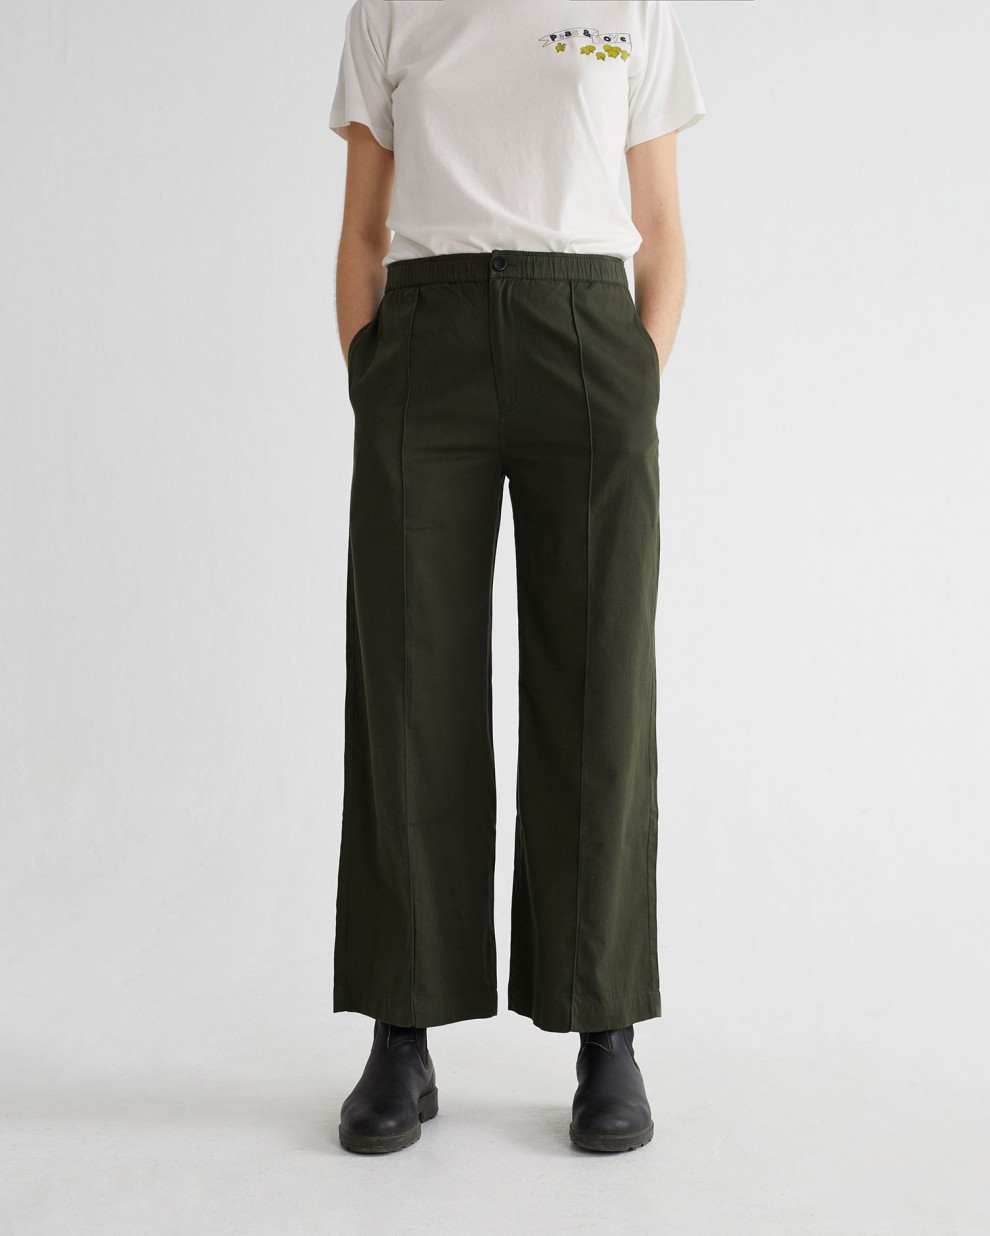 GREEN MAIA PANTS